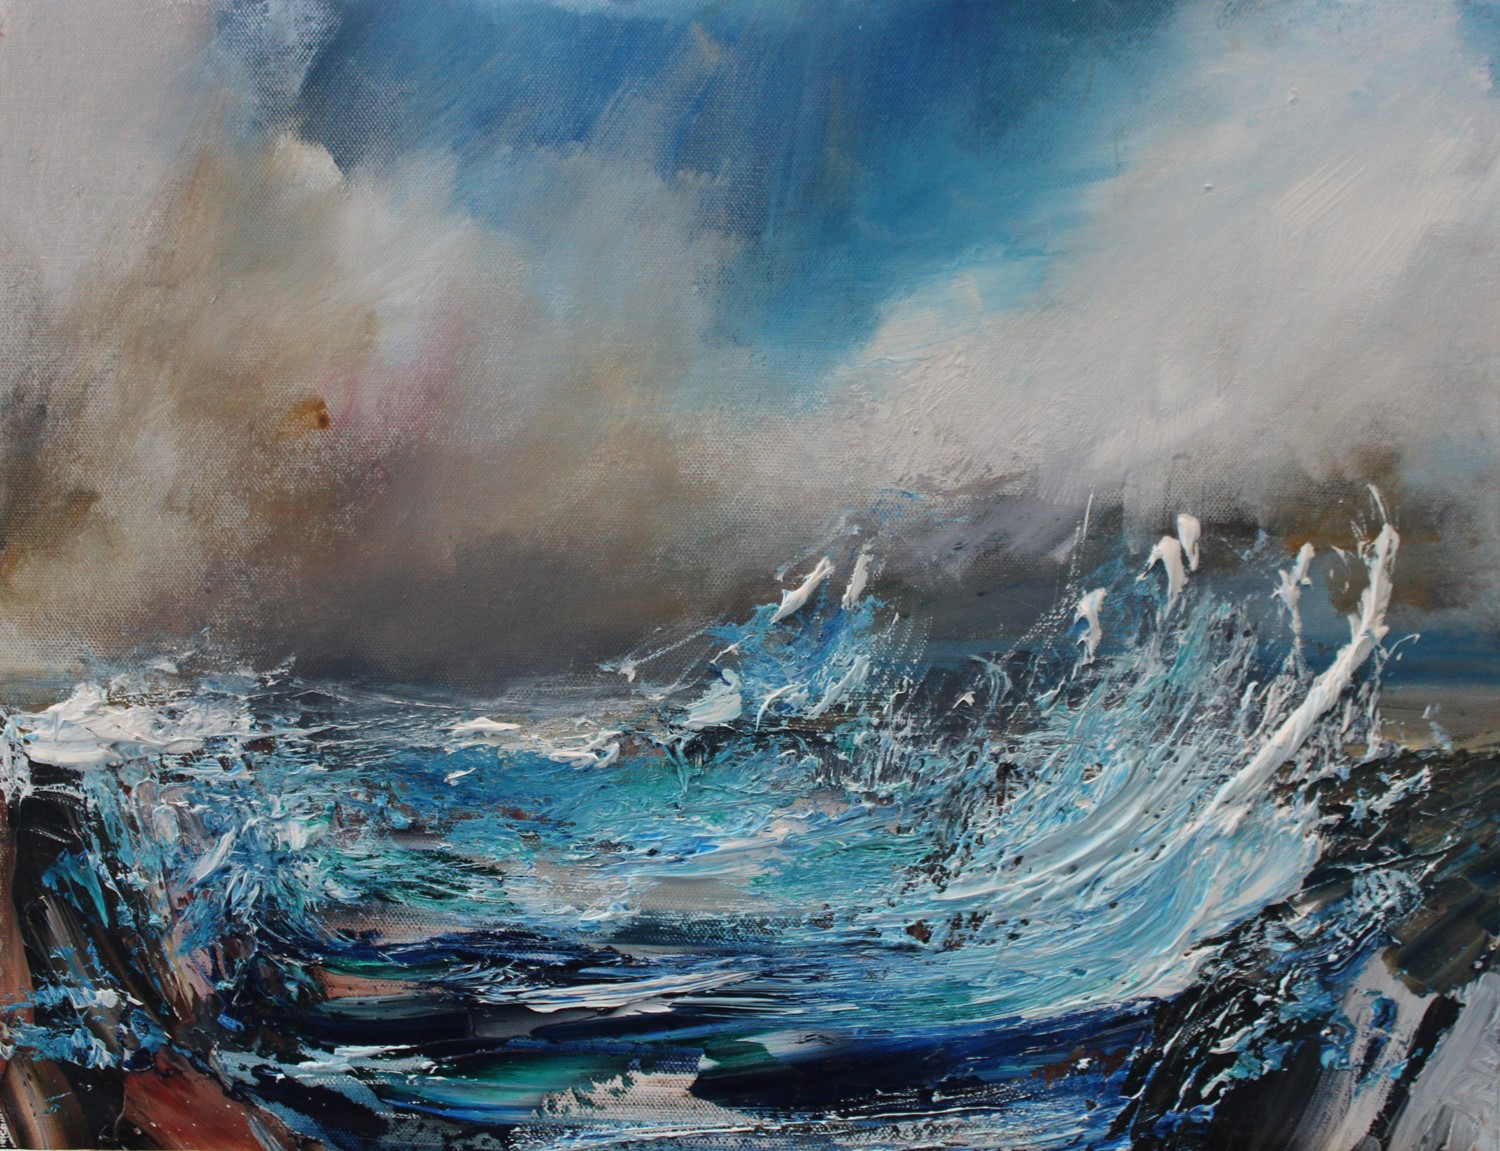 'Incoming Sea Spray' by artist Rosanne Barr